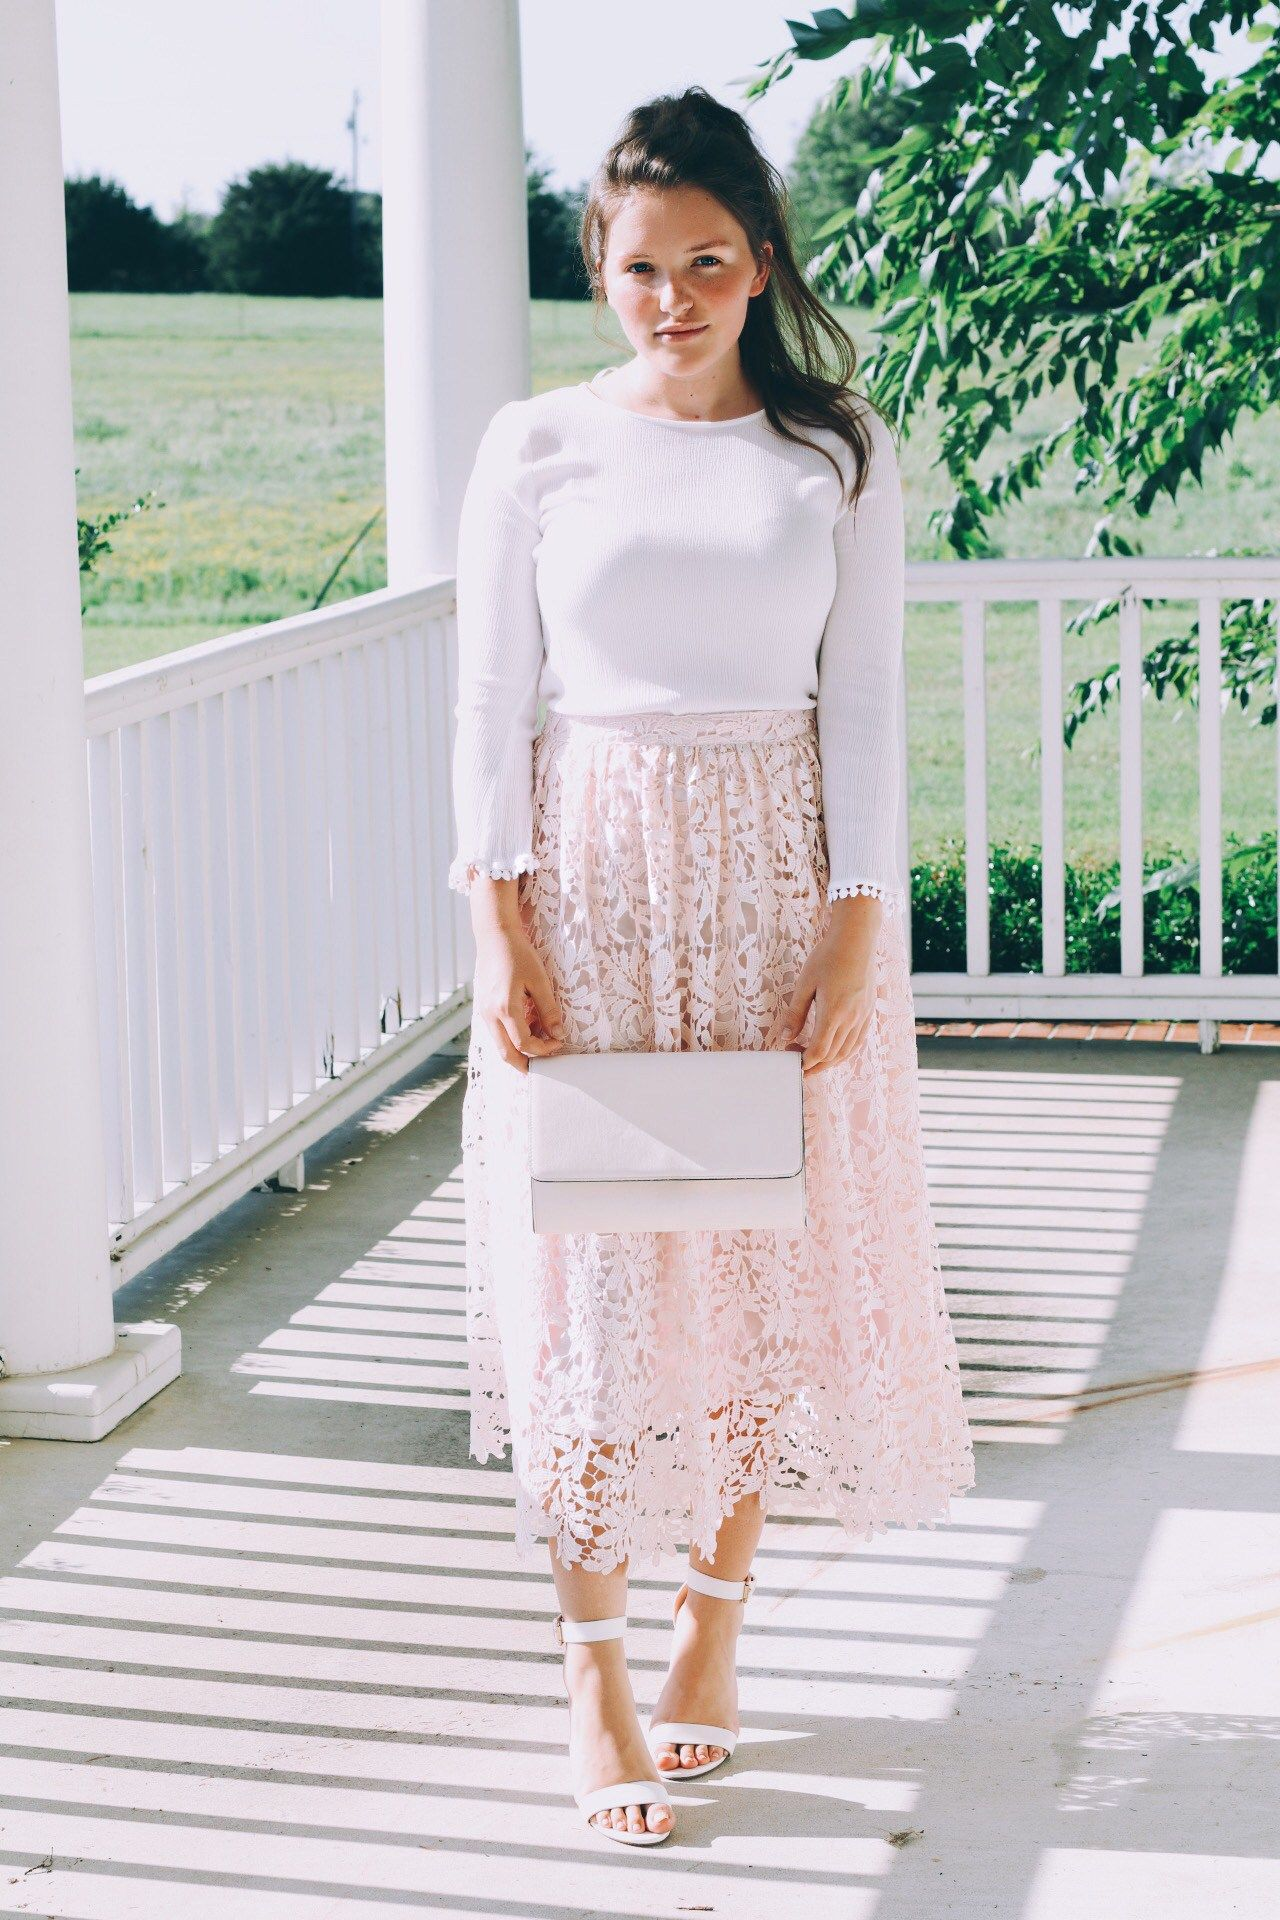 Blush and Lace #modestfashion